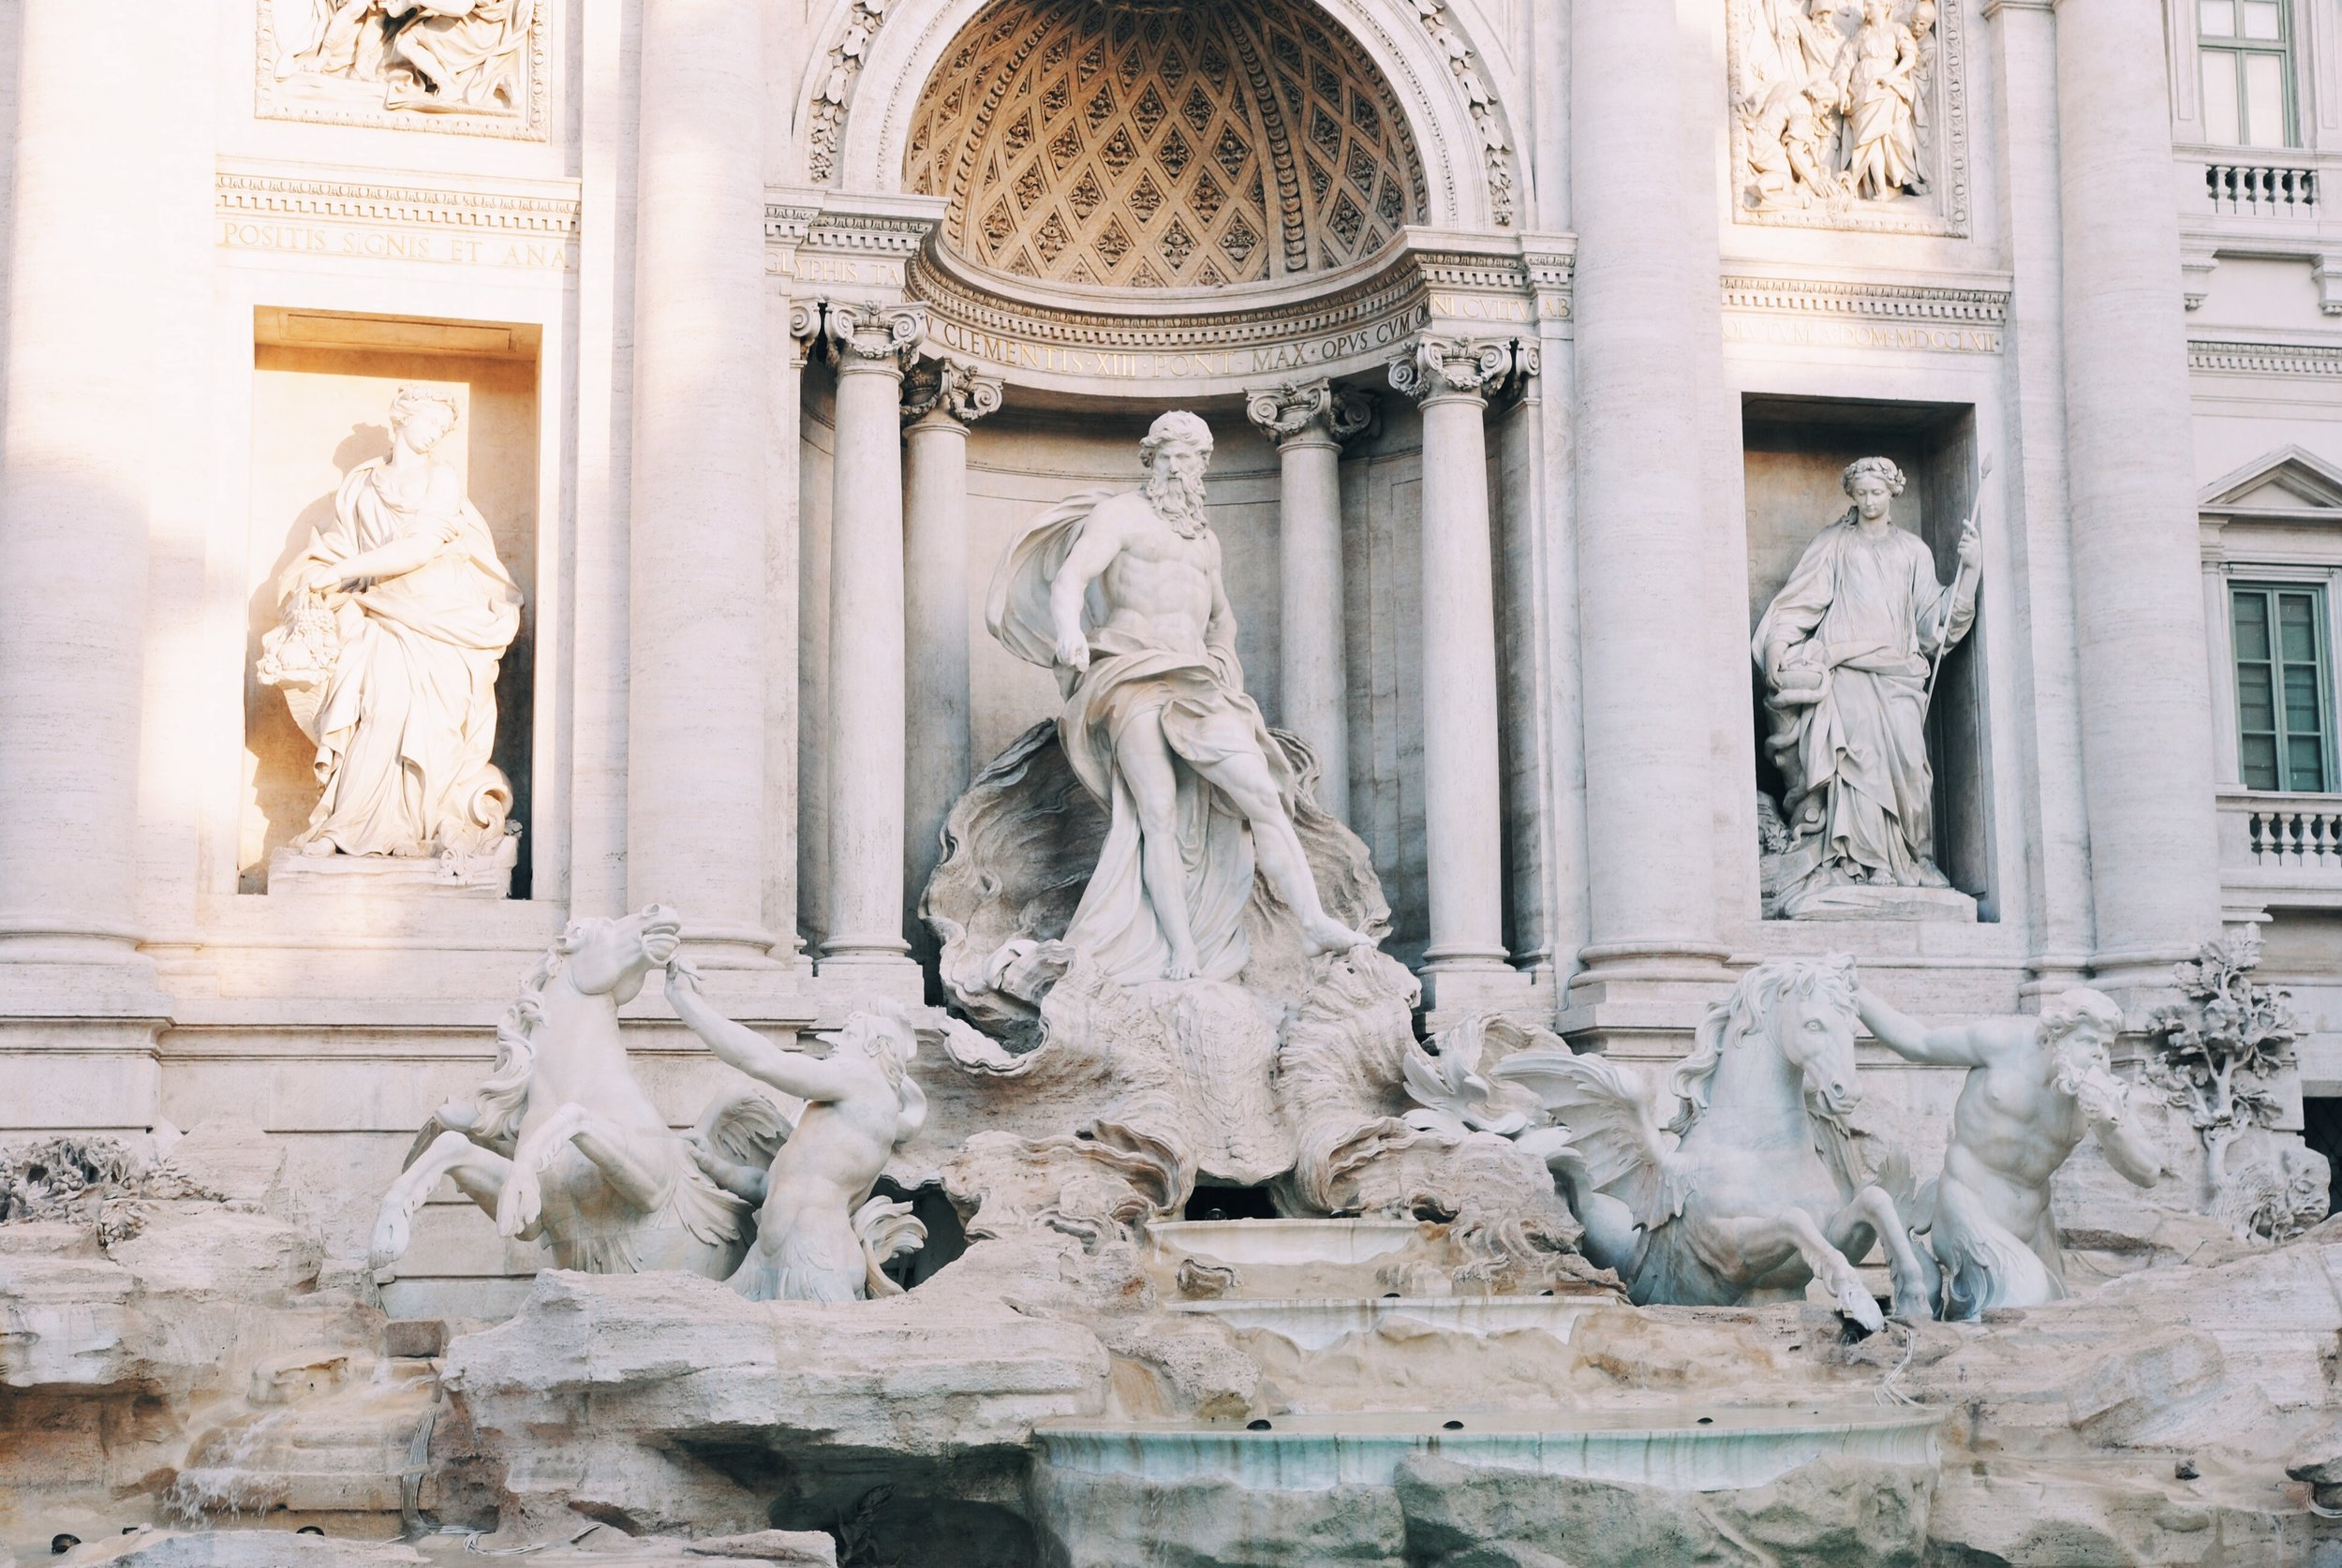 Trevi Fountain: Largest baroque style fountain in Rome.